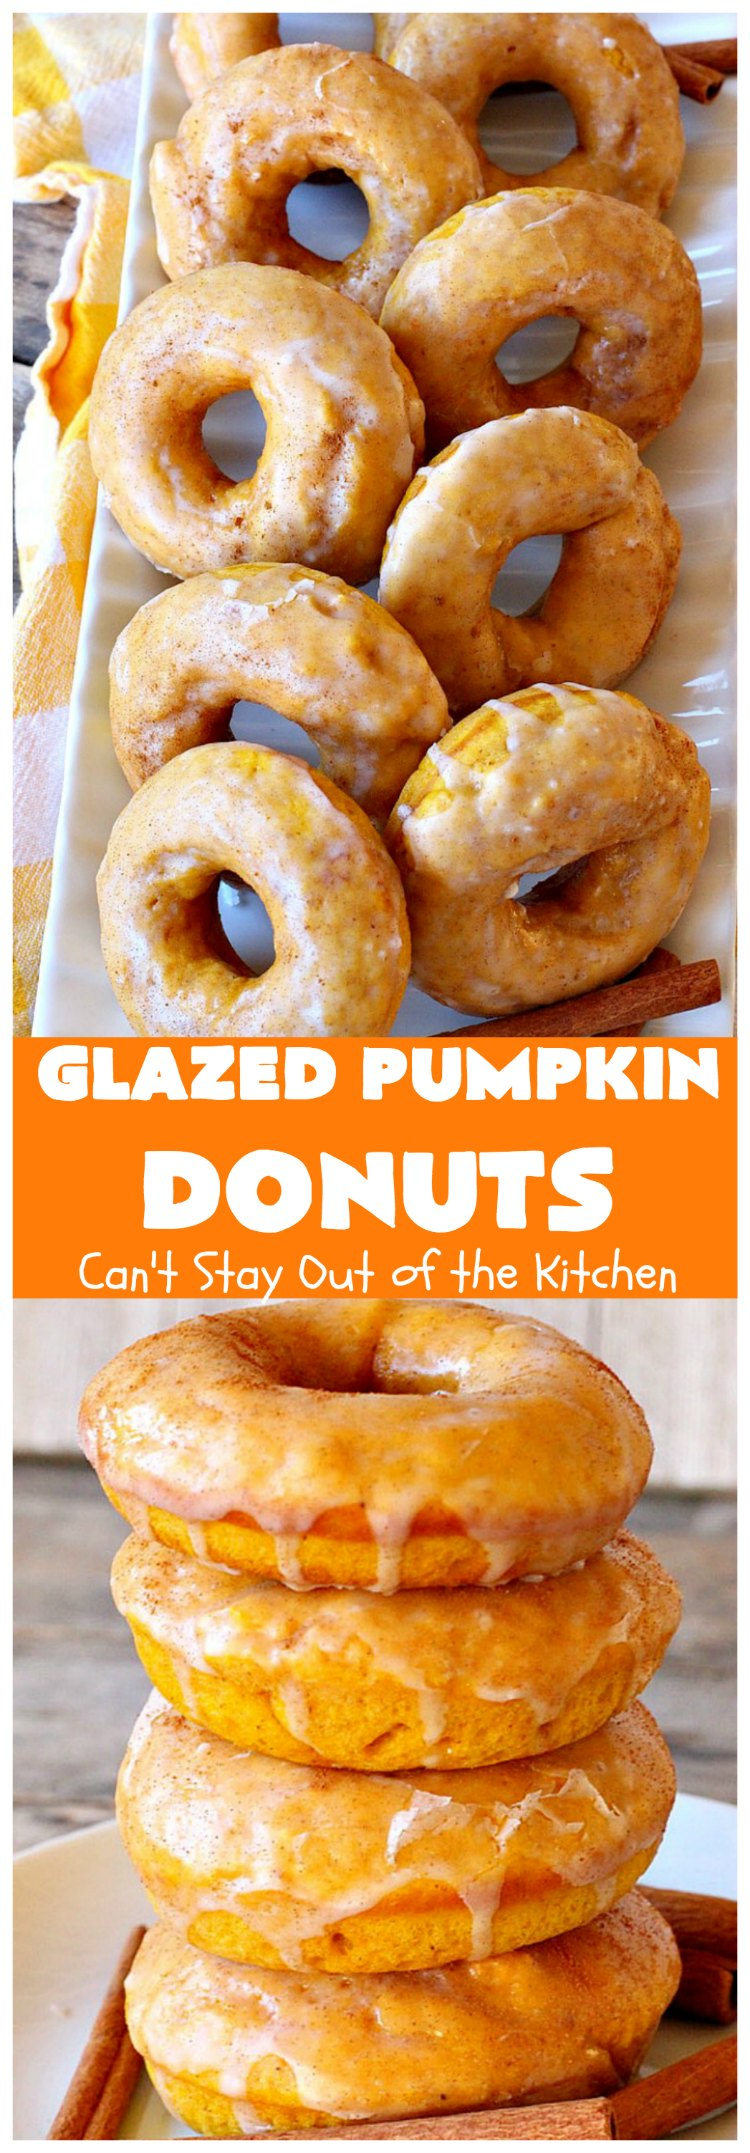 Glazed Pumpkin Donuts | Can't Stay Out of the Kitchen